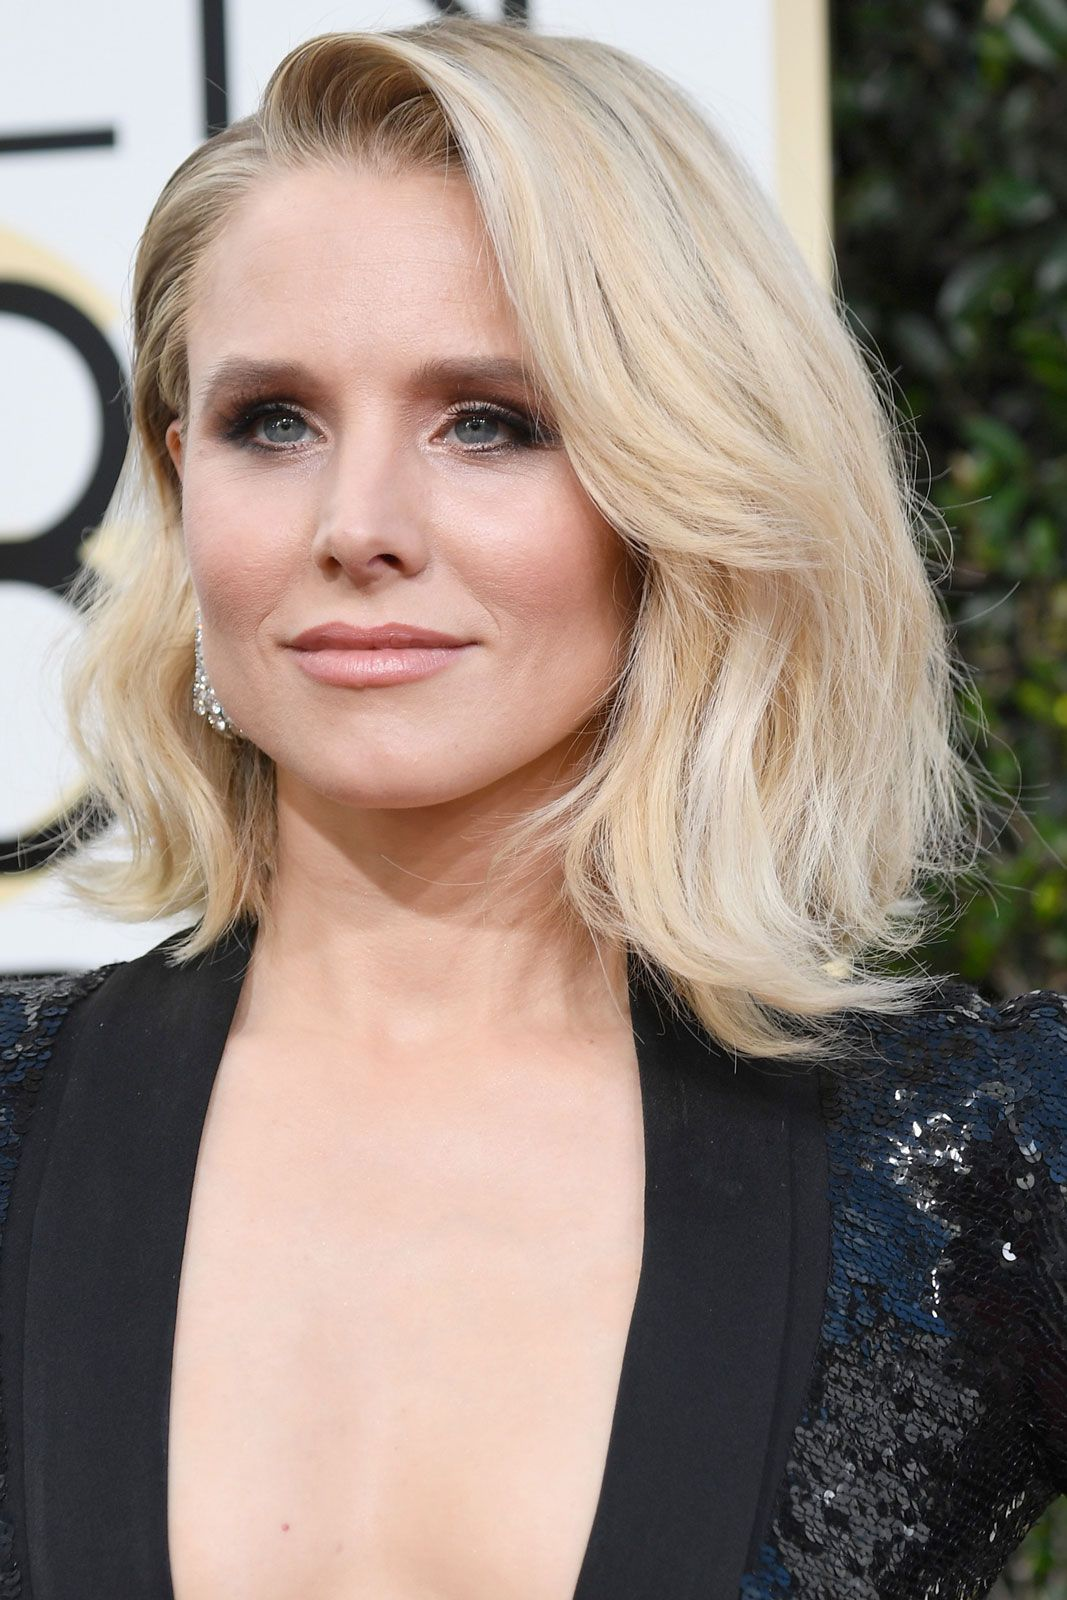 The Best Beauty Looks From The Golden Globes  Hair trends Lob and